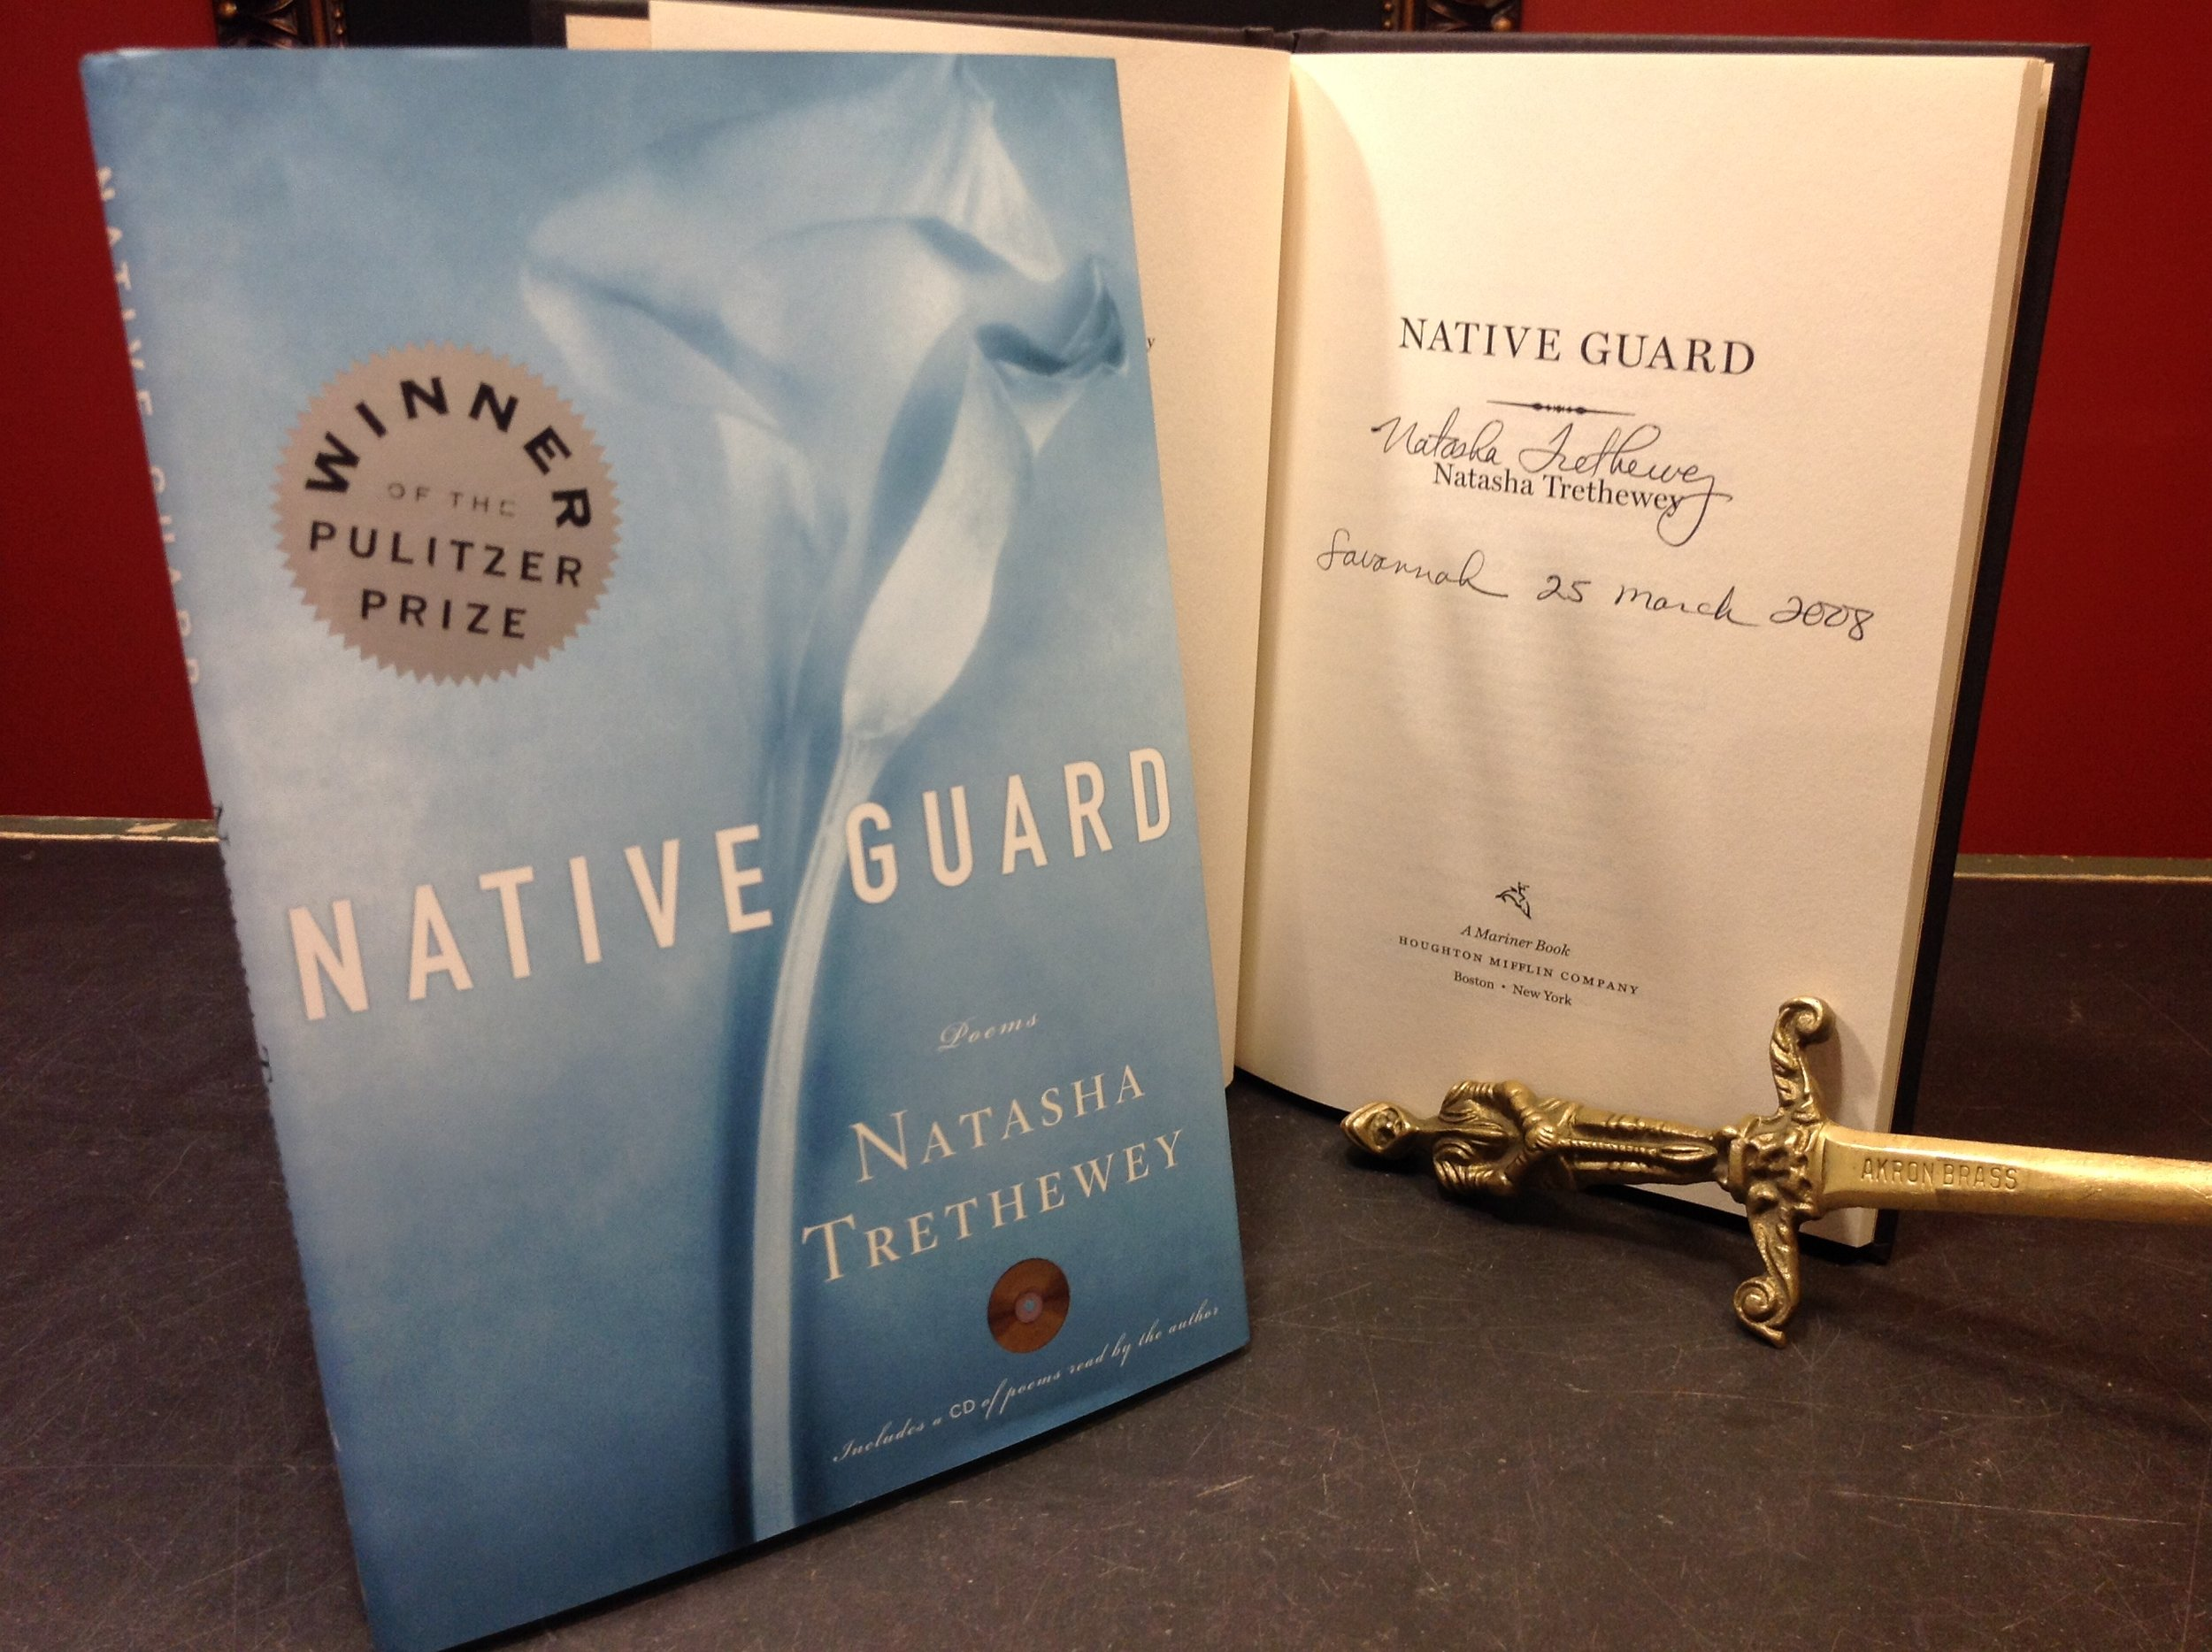 Native Guard, by Pulitzer Prize winner Natasha Trethewey - 2006 First Edition poetry collection, Houghton Mifflin, Signed and dated in Savannah in 2008.